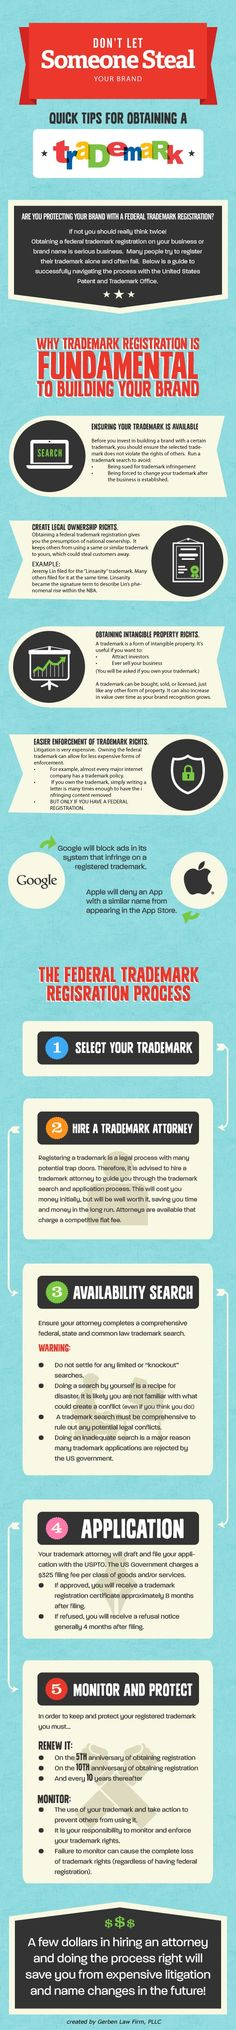 Don't Let Someone Steal Your Brand - Guide to Trademarks